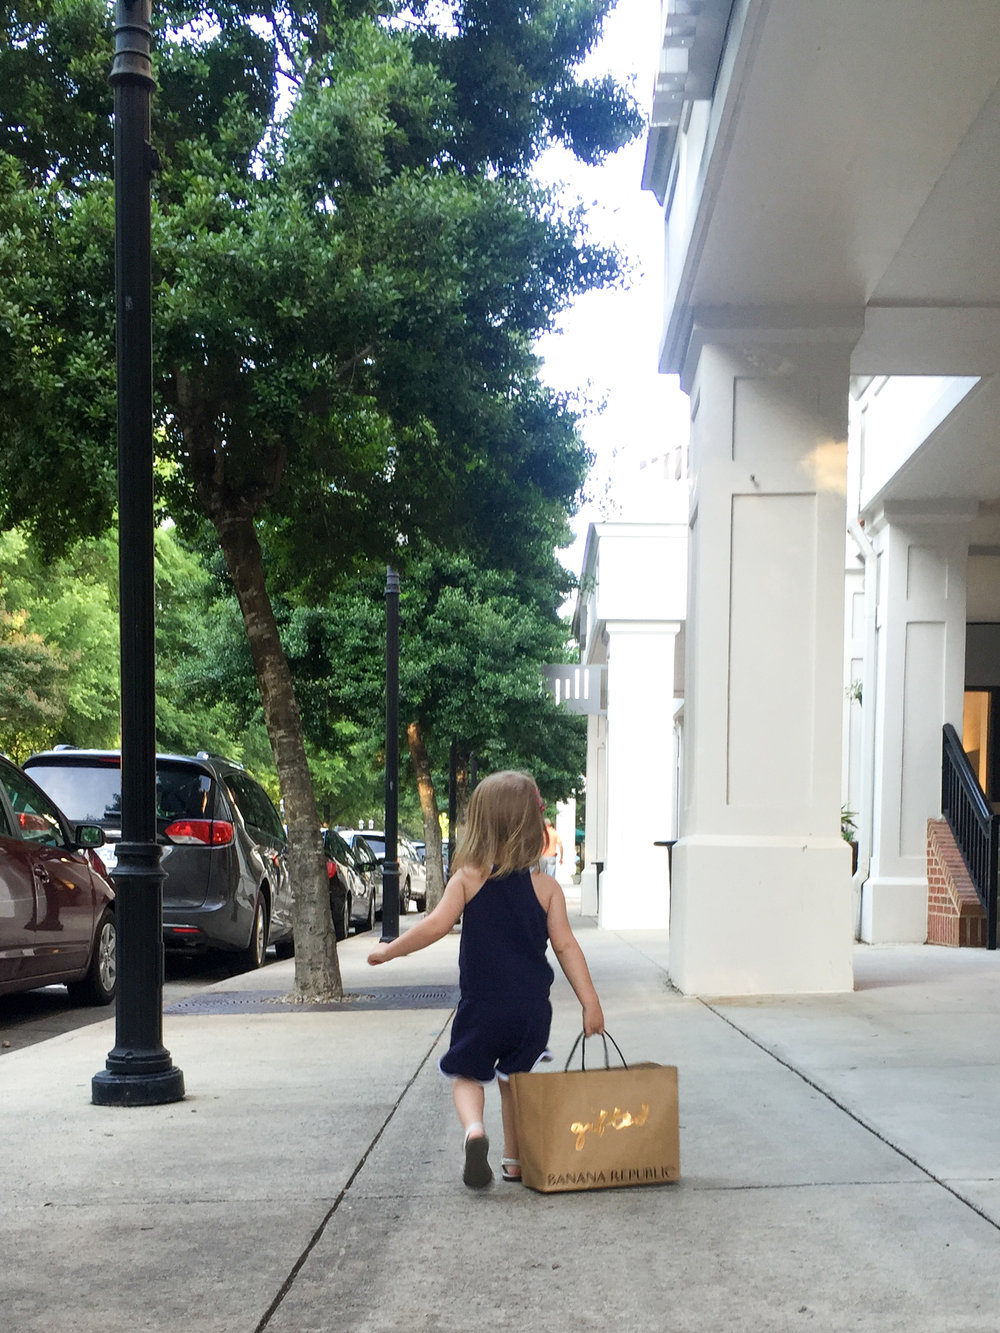 birkdale-village-huntersville-nc-toddler-shopping